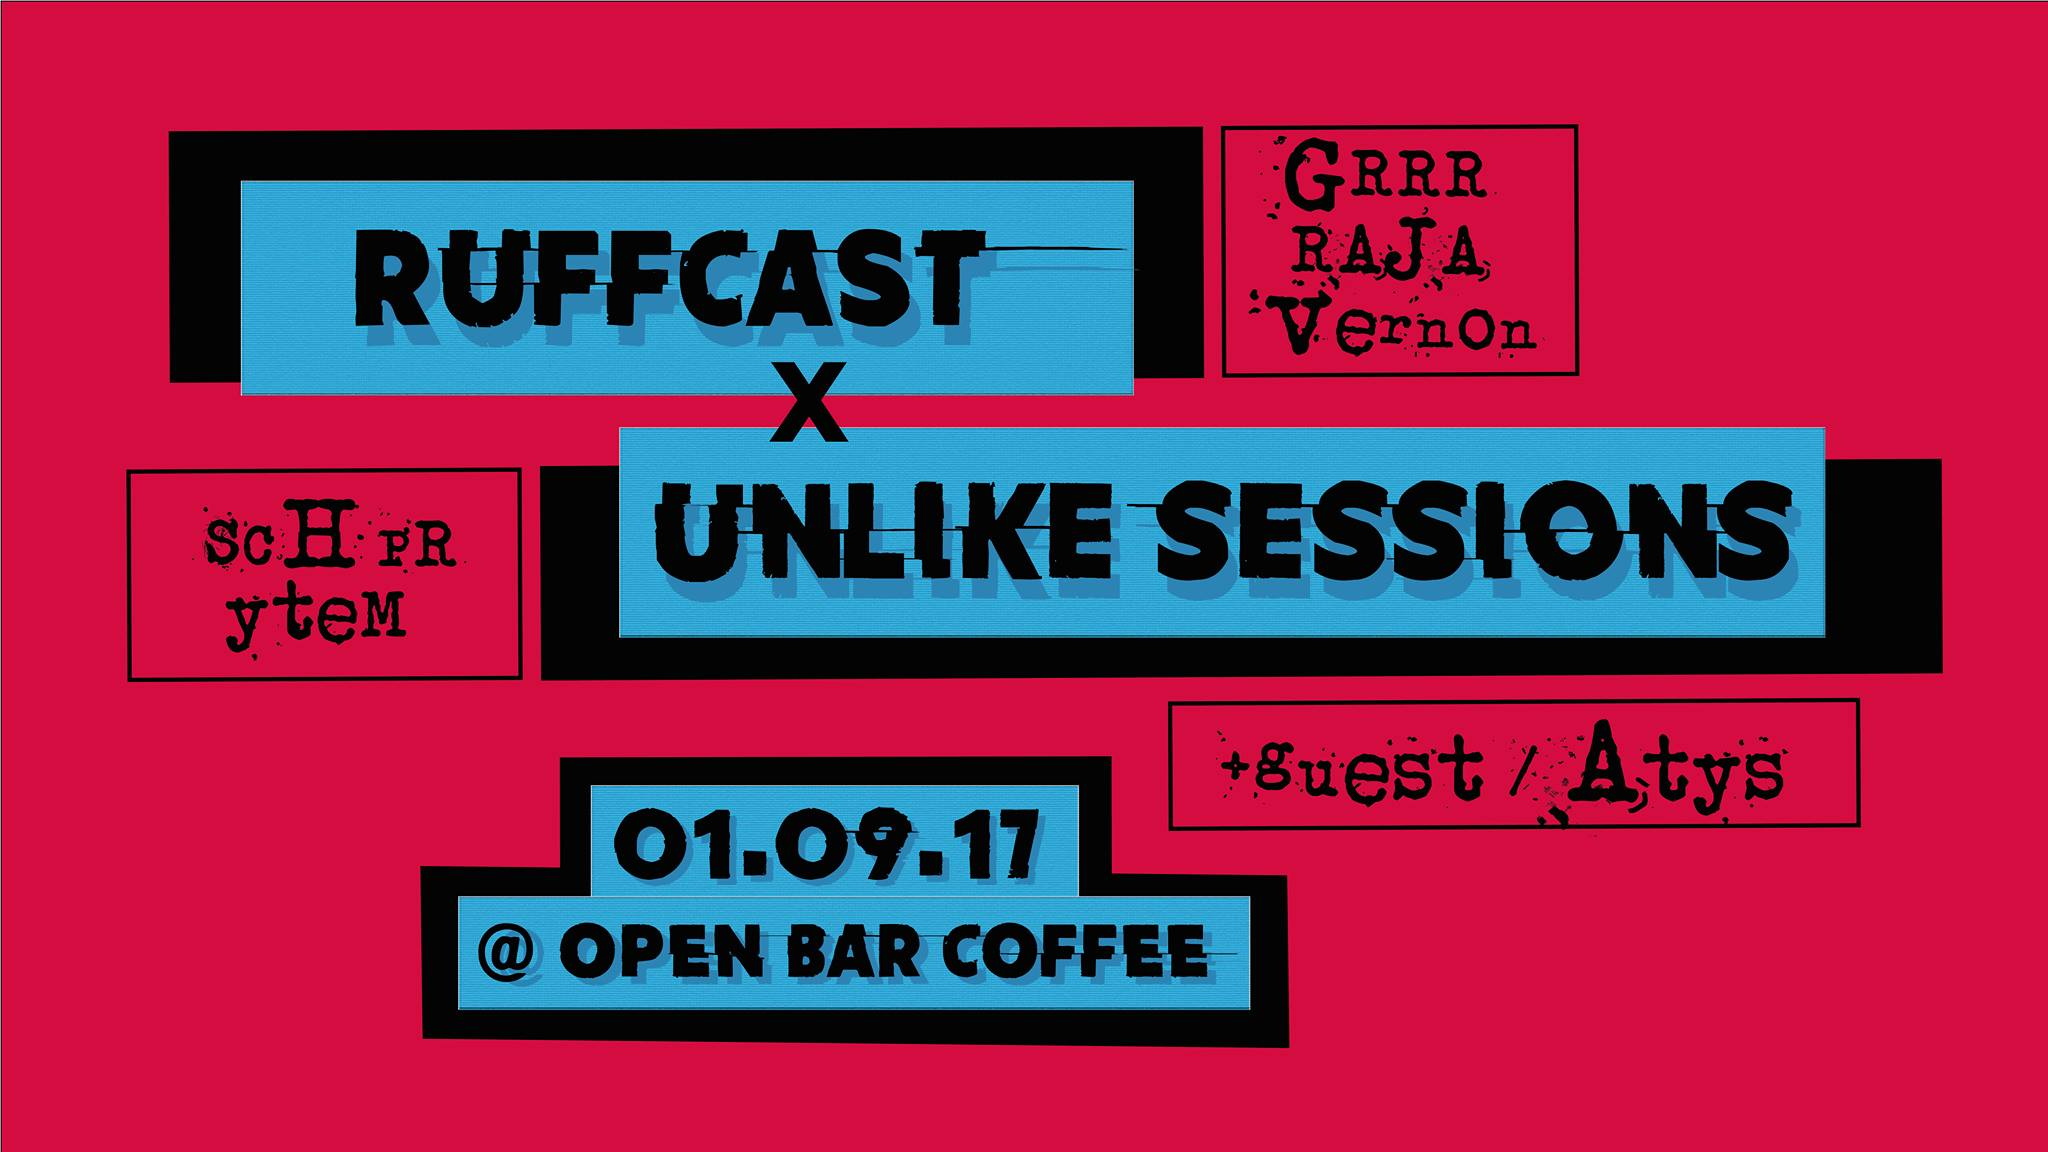 Ruffcast invite unlike sessions + atys